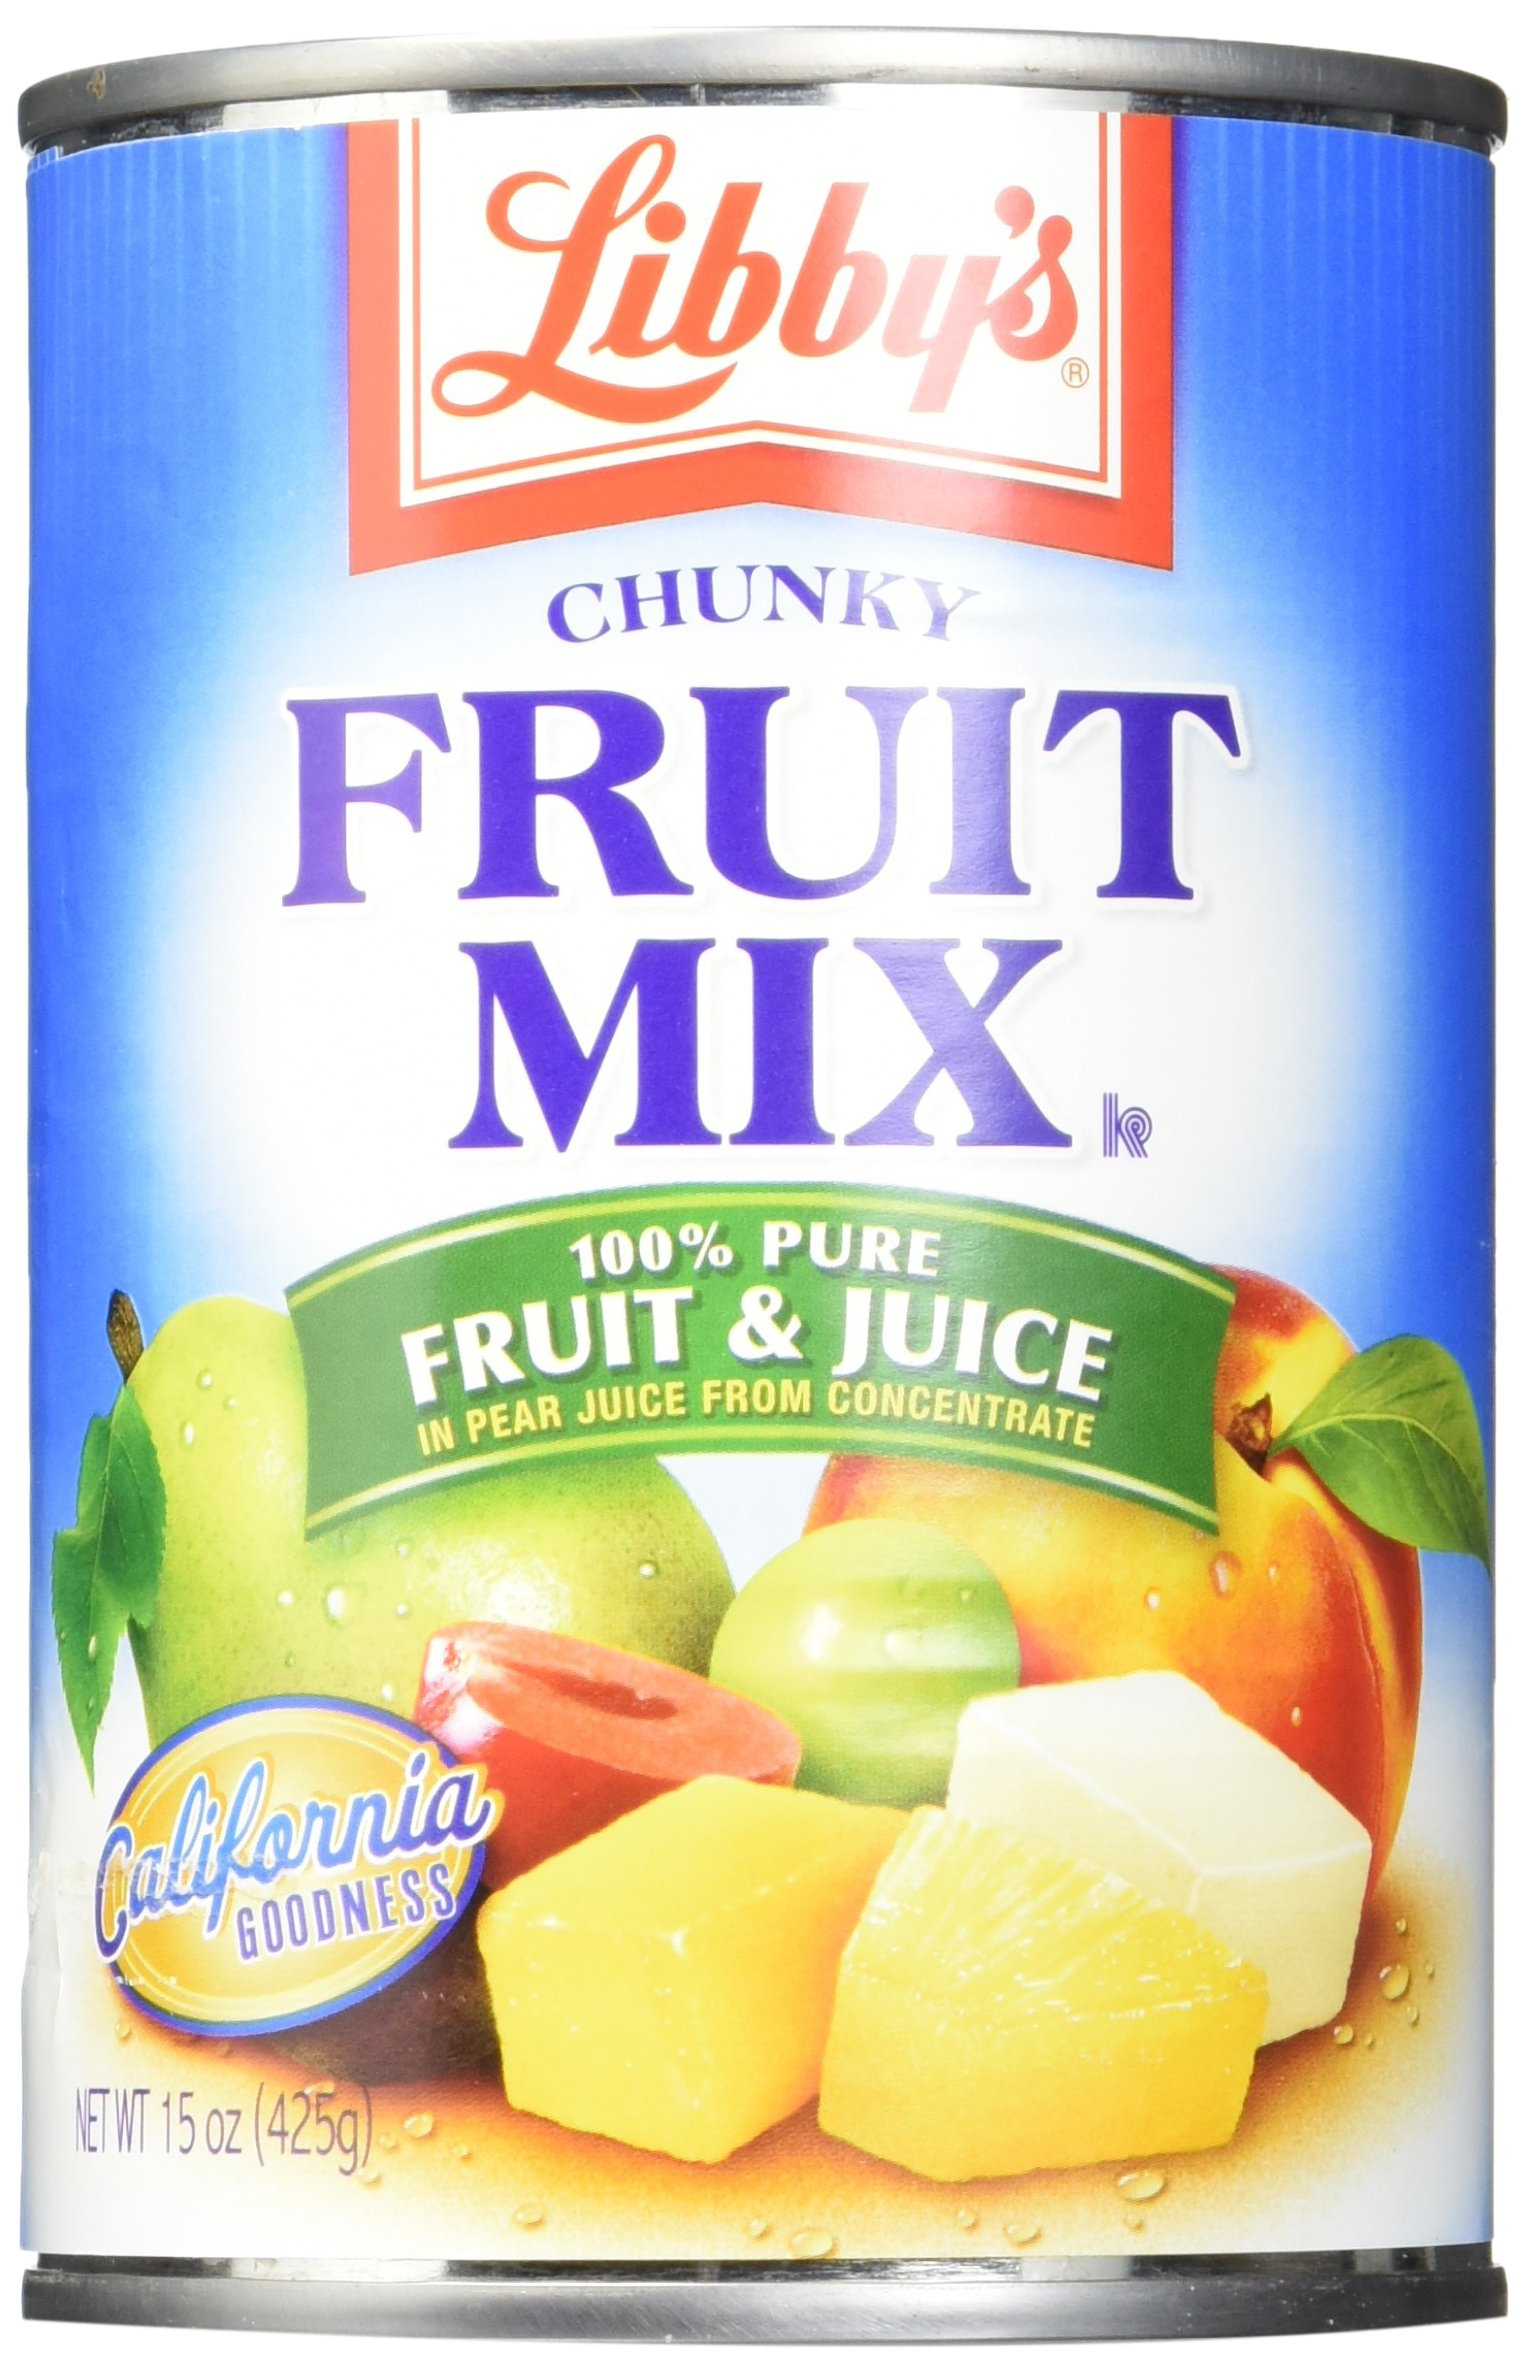 Libby's Fruit Mix Chunky In Pear Juices Concentrate Cans, 15 Ounce (Pack of 12)